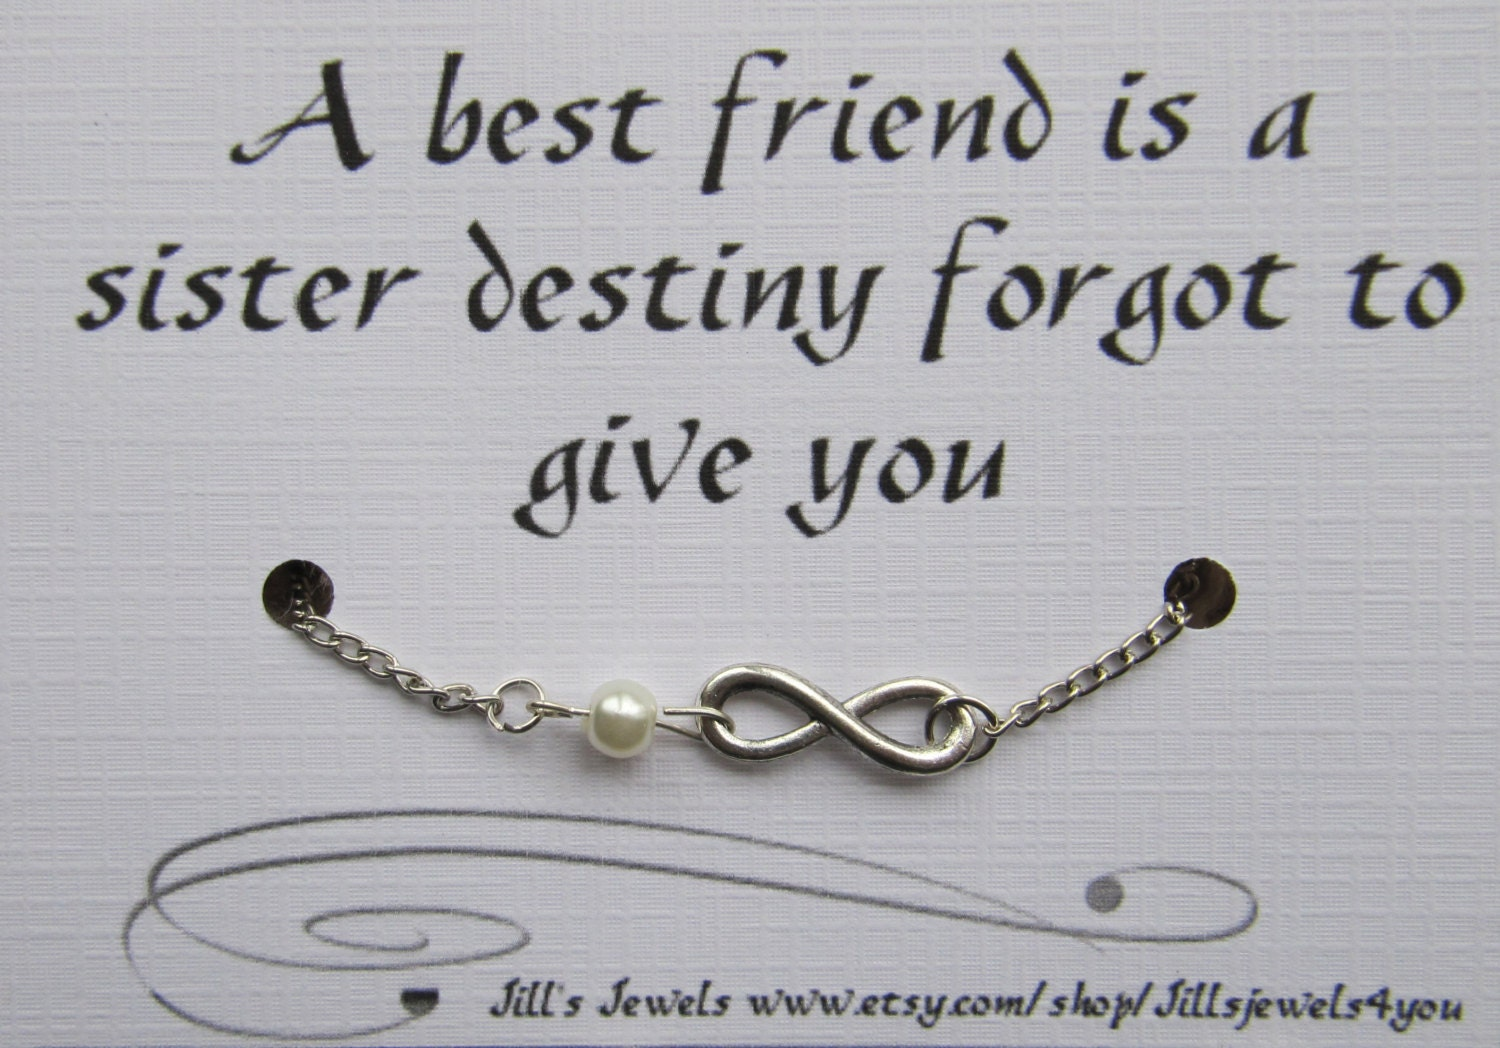 Inspirational Quote About Friendship Best Friend Gift Friendship Infinity Charm Anklet With Pearl